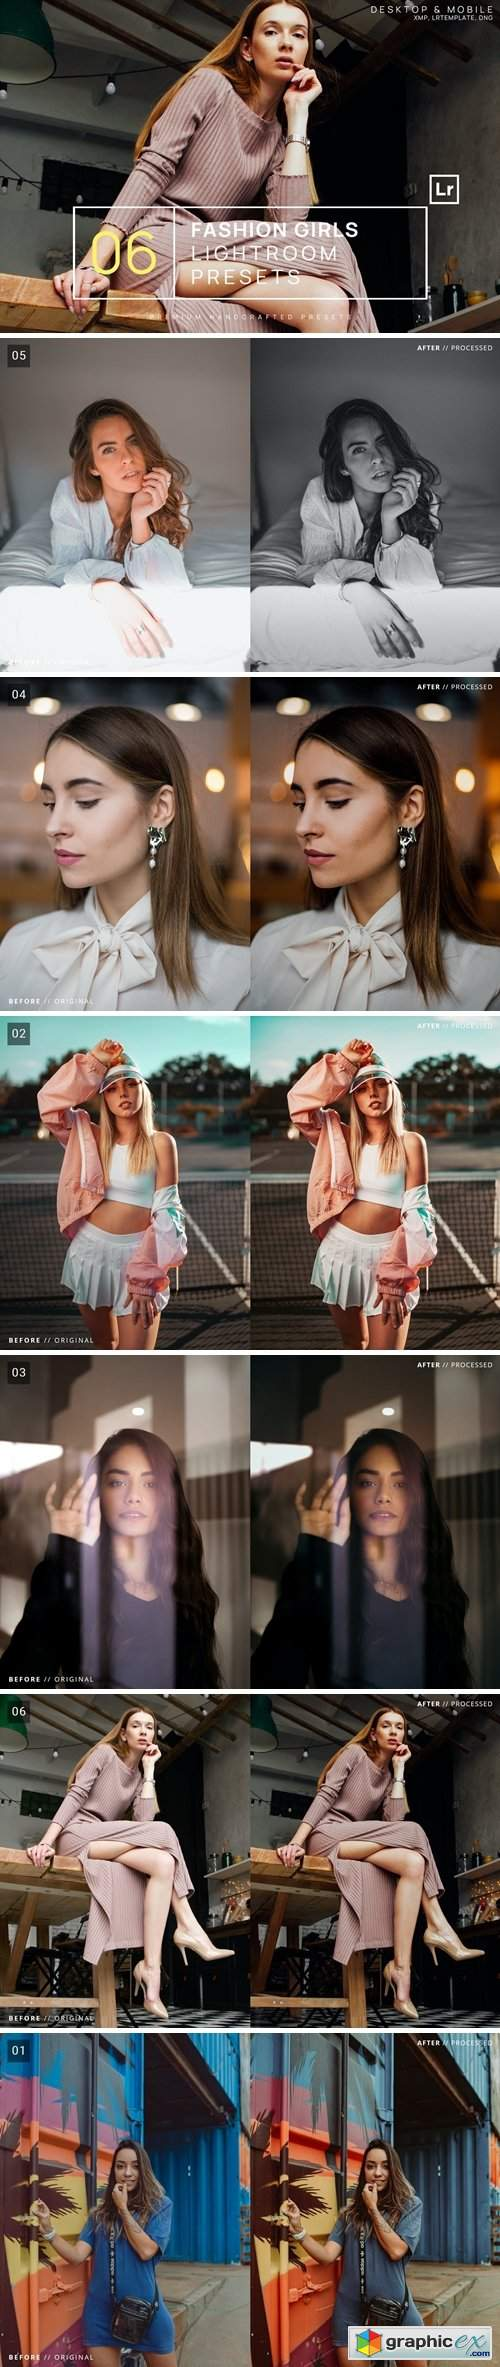 6 Fashion Girls Lightroom Presets + Mobile